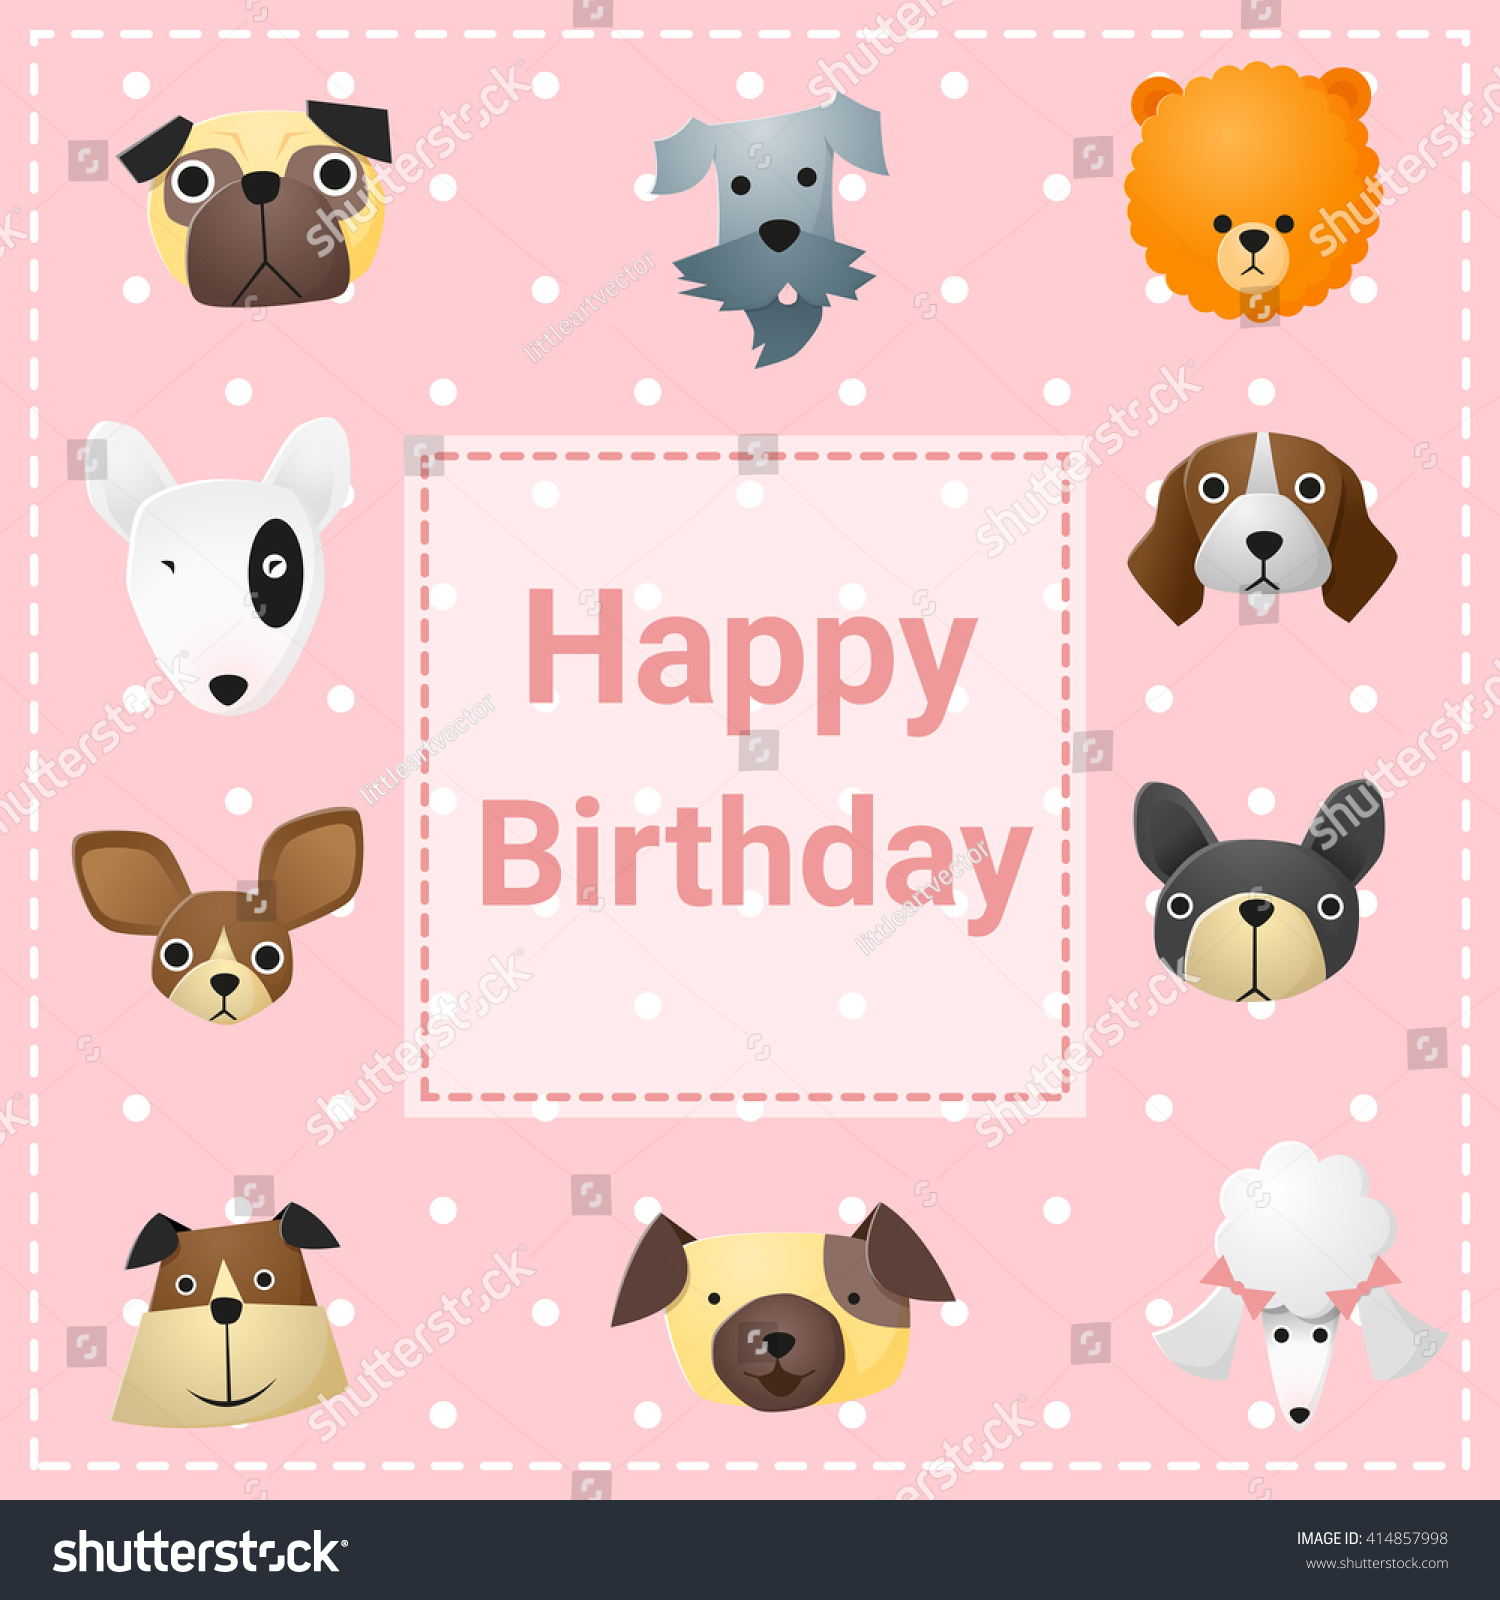 Cute Happy Birthday Card Funny Dogs Vector 414857998 – Happy Birthday Cards with Dogs